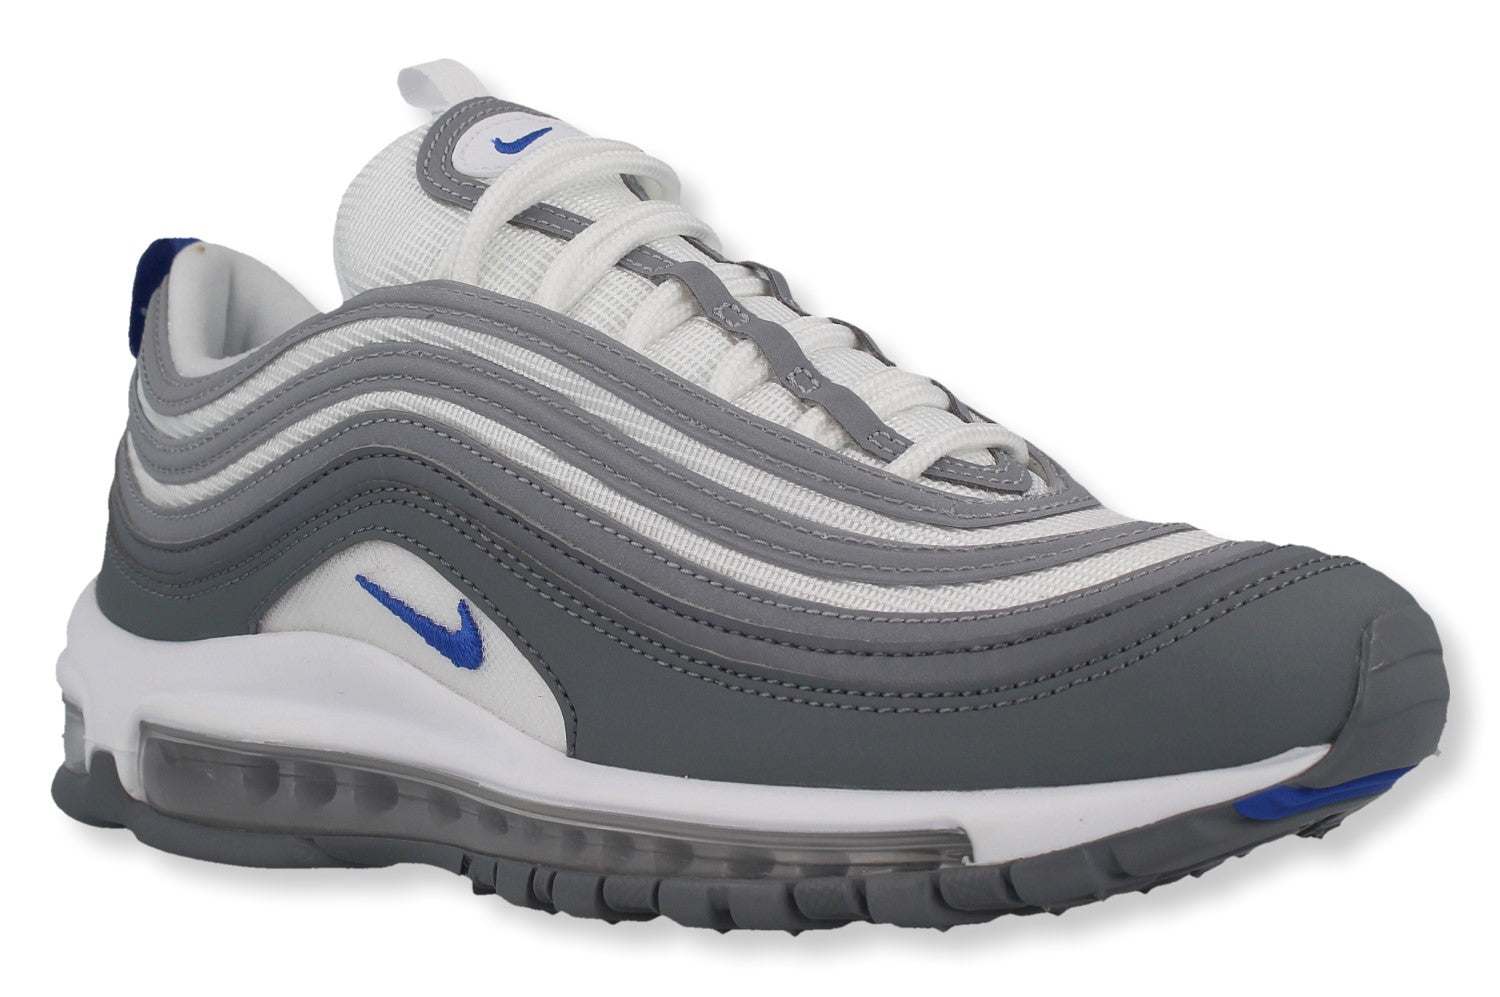 Nike Air Max 97 WhiteHyper Royal Cool Grey